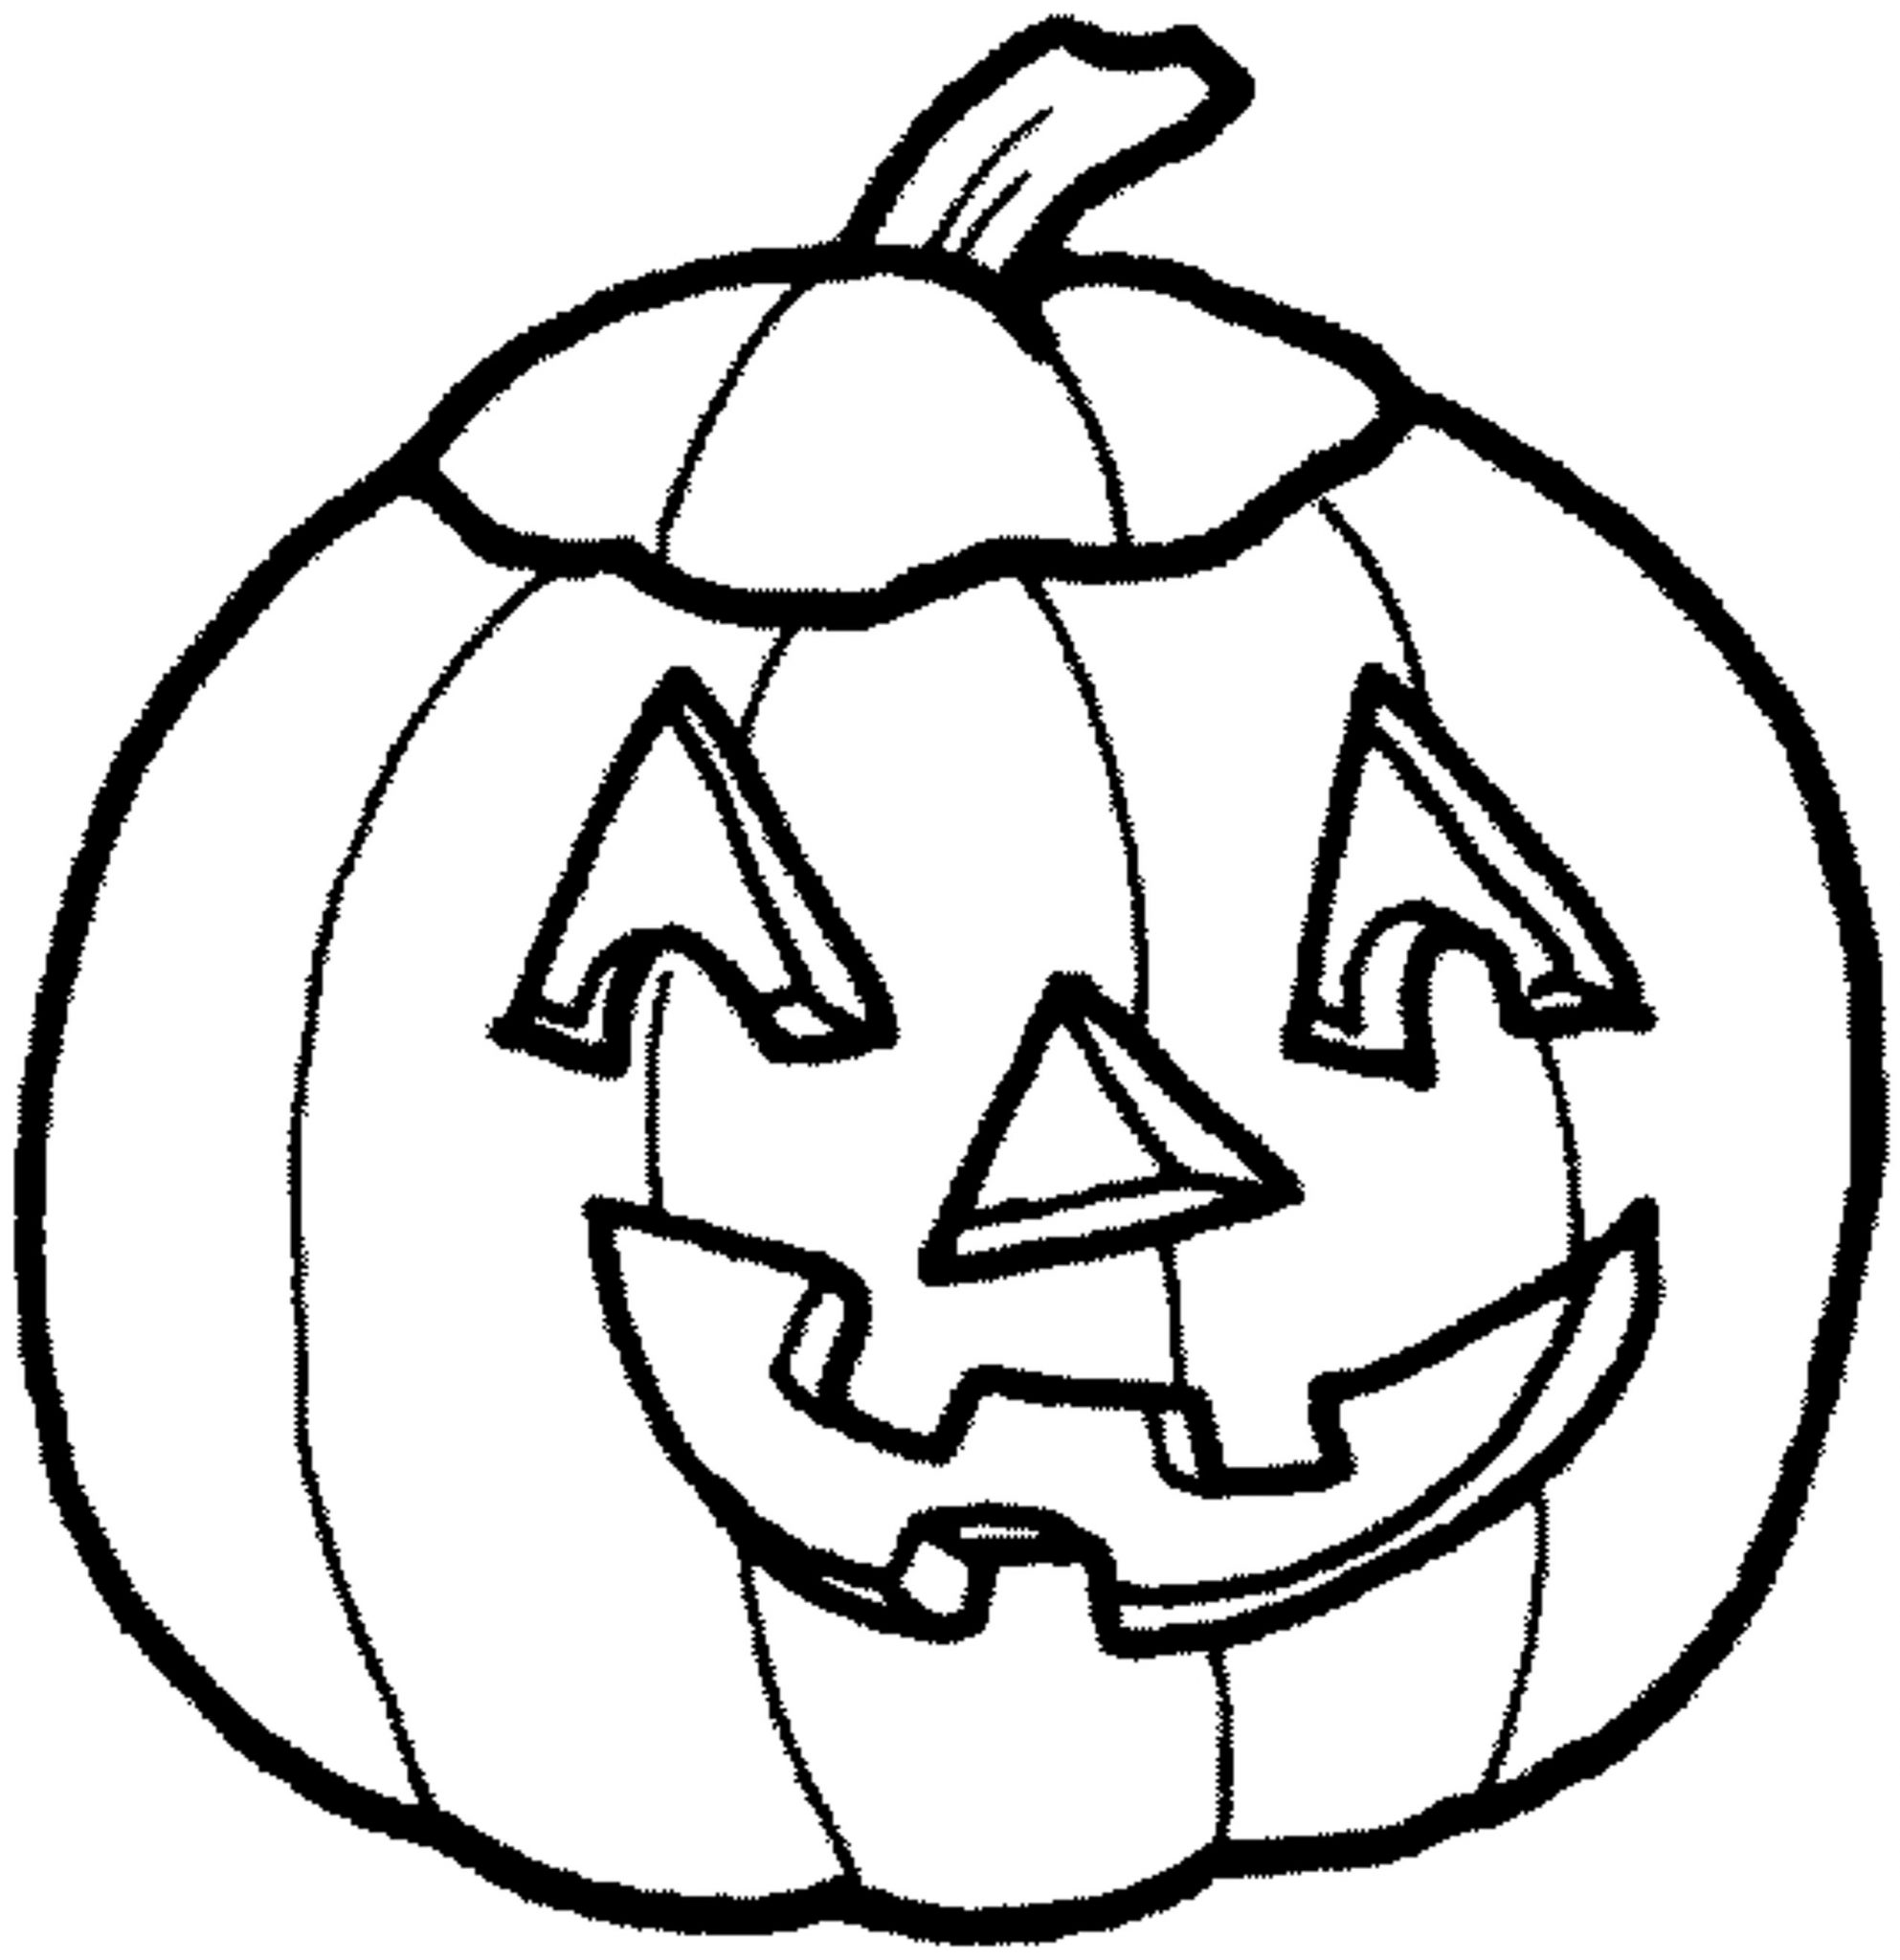 free printable pictures of pumpkins free printable pumpkin coloring pages for kids cool2bkids pumpkins printable pictures free of